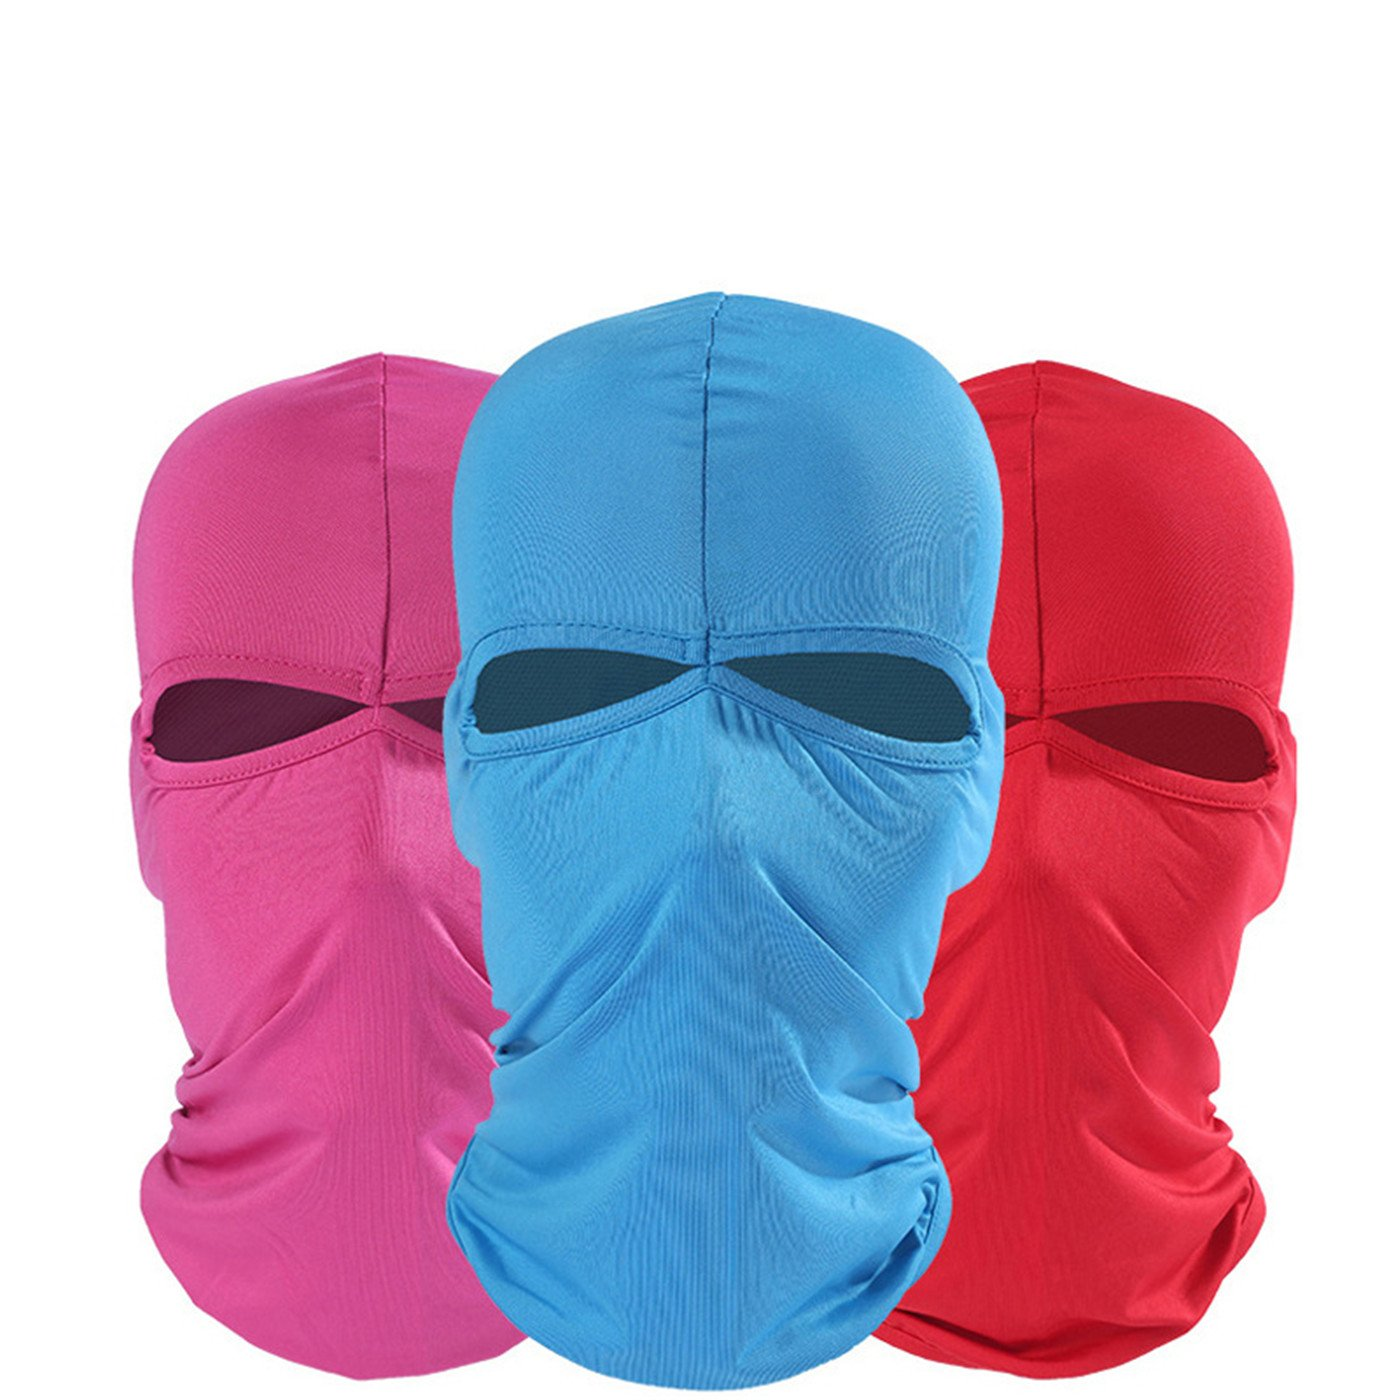 Balaclava - Windproof Mask Adjustable Face Head Warmer for Skiing, Cycling, Motorcycle Outdoor Sports 3Pack 1